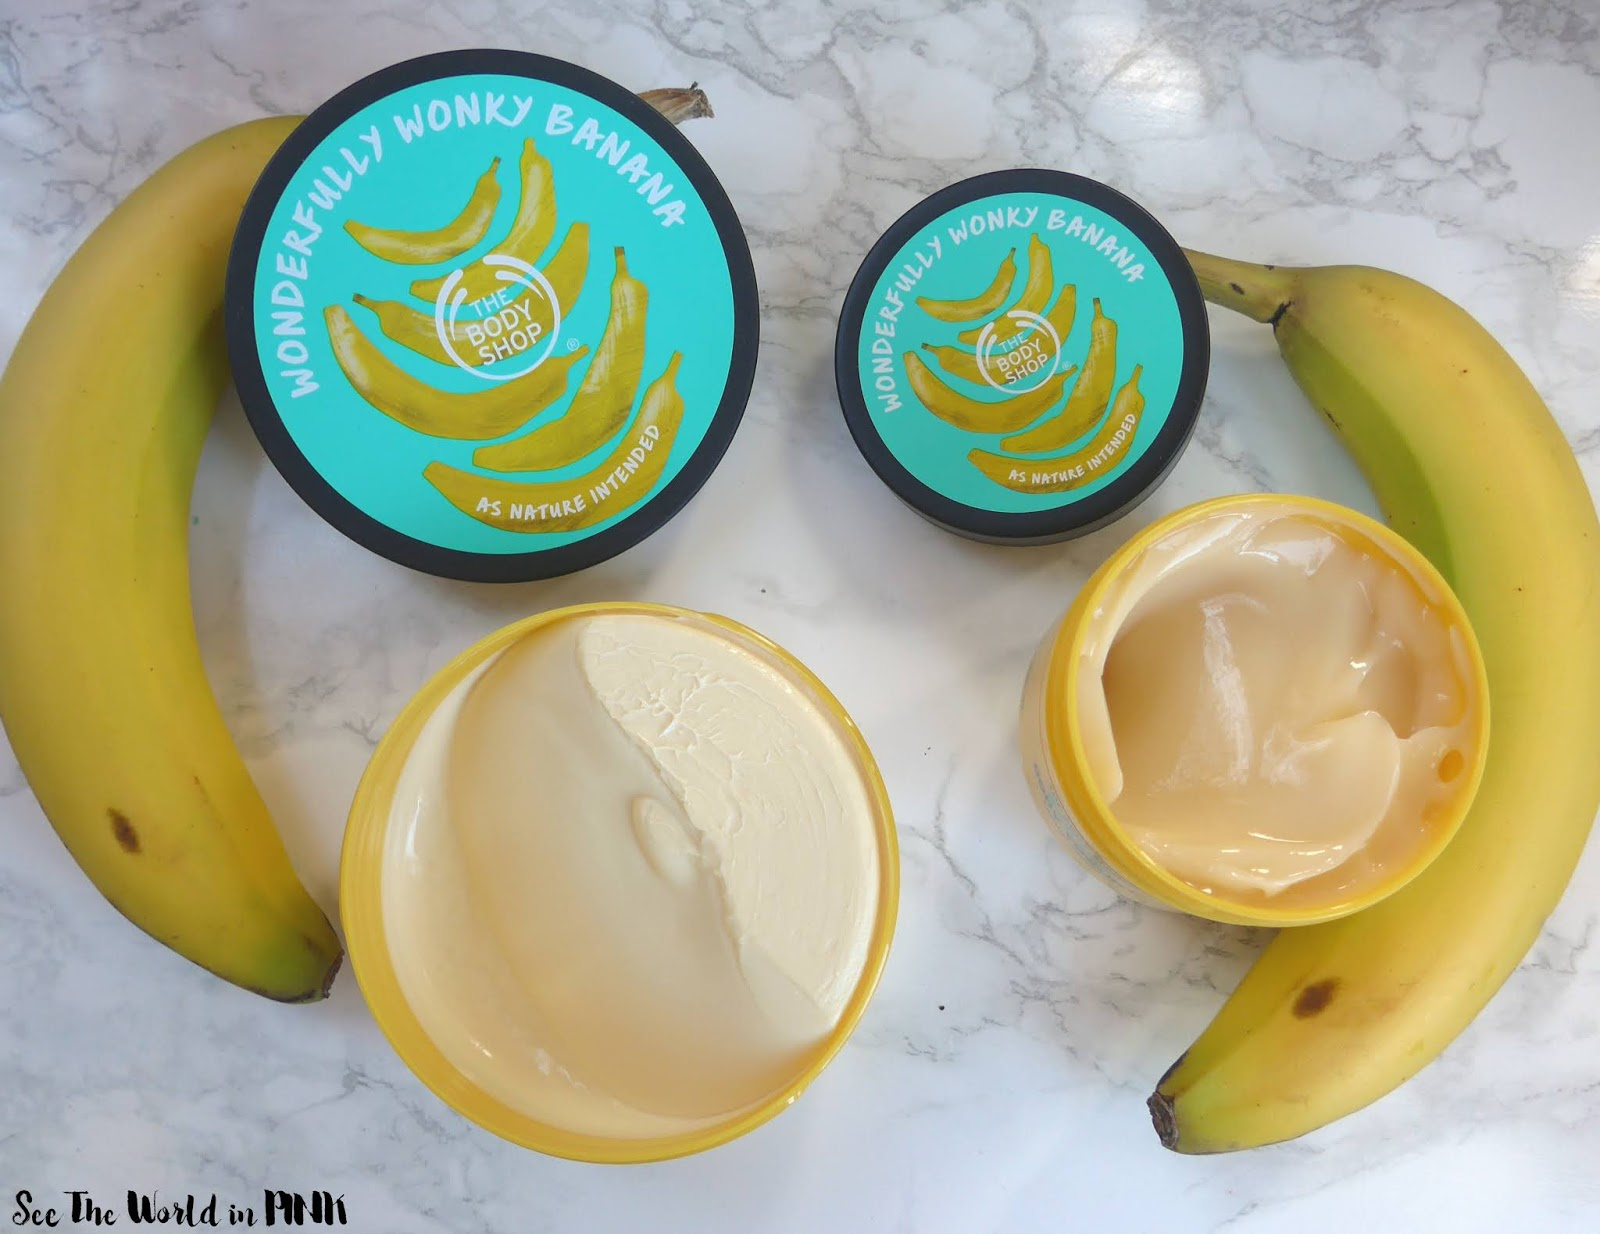 The Body Shop Is Bananas - B - A - N - A - N - A - S